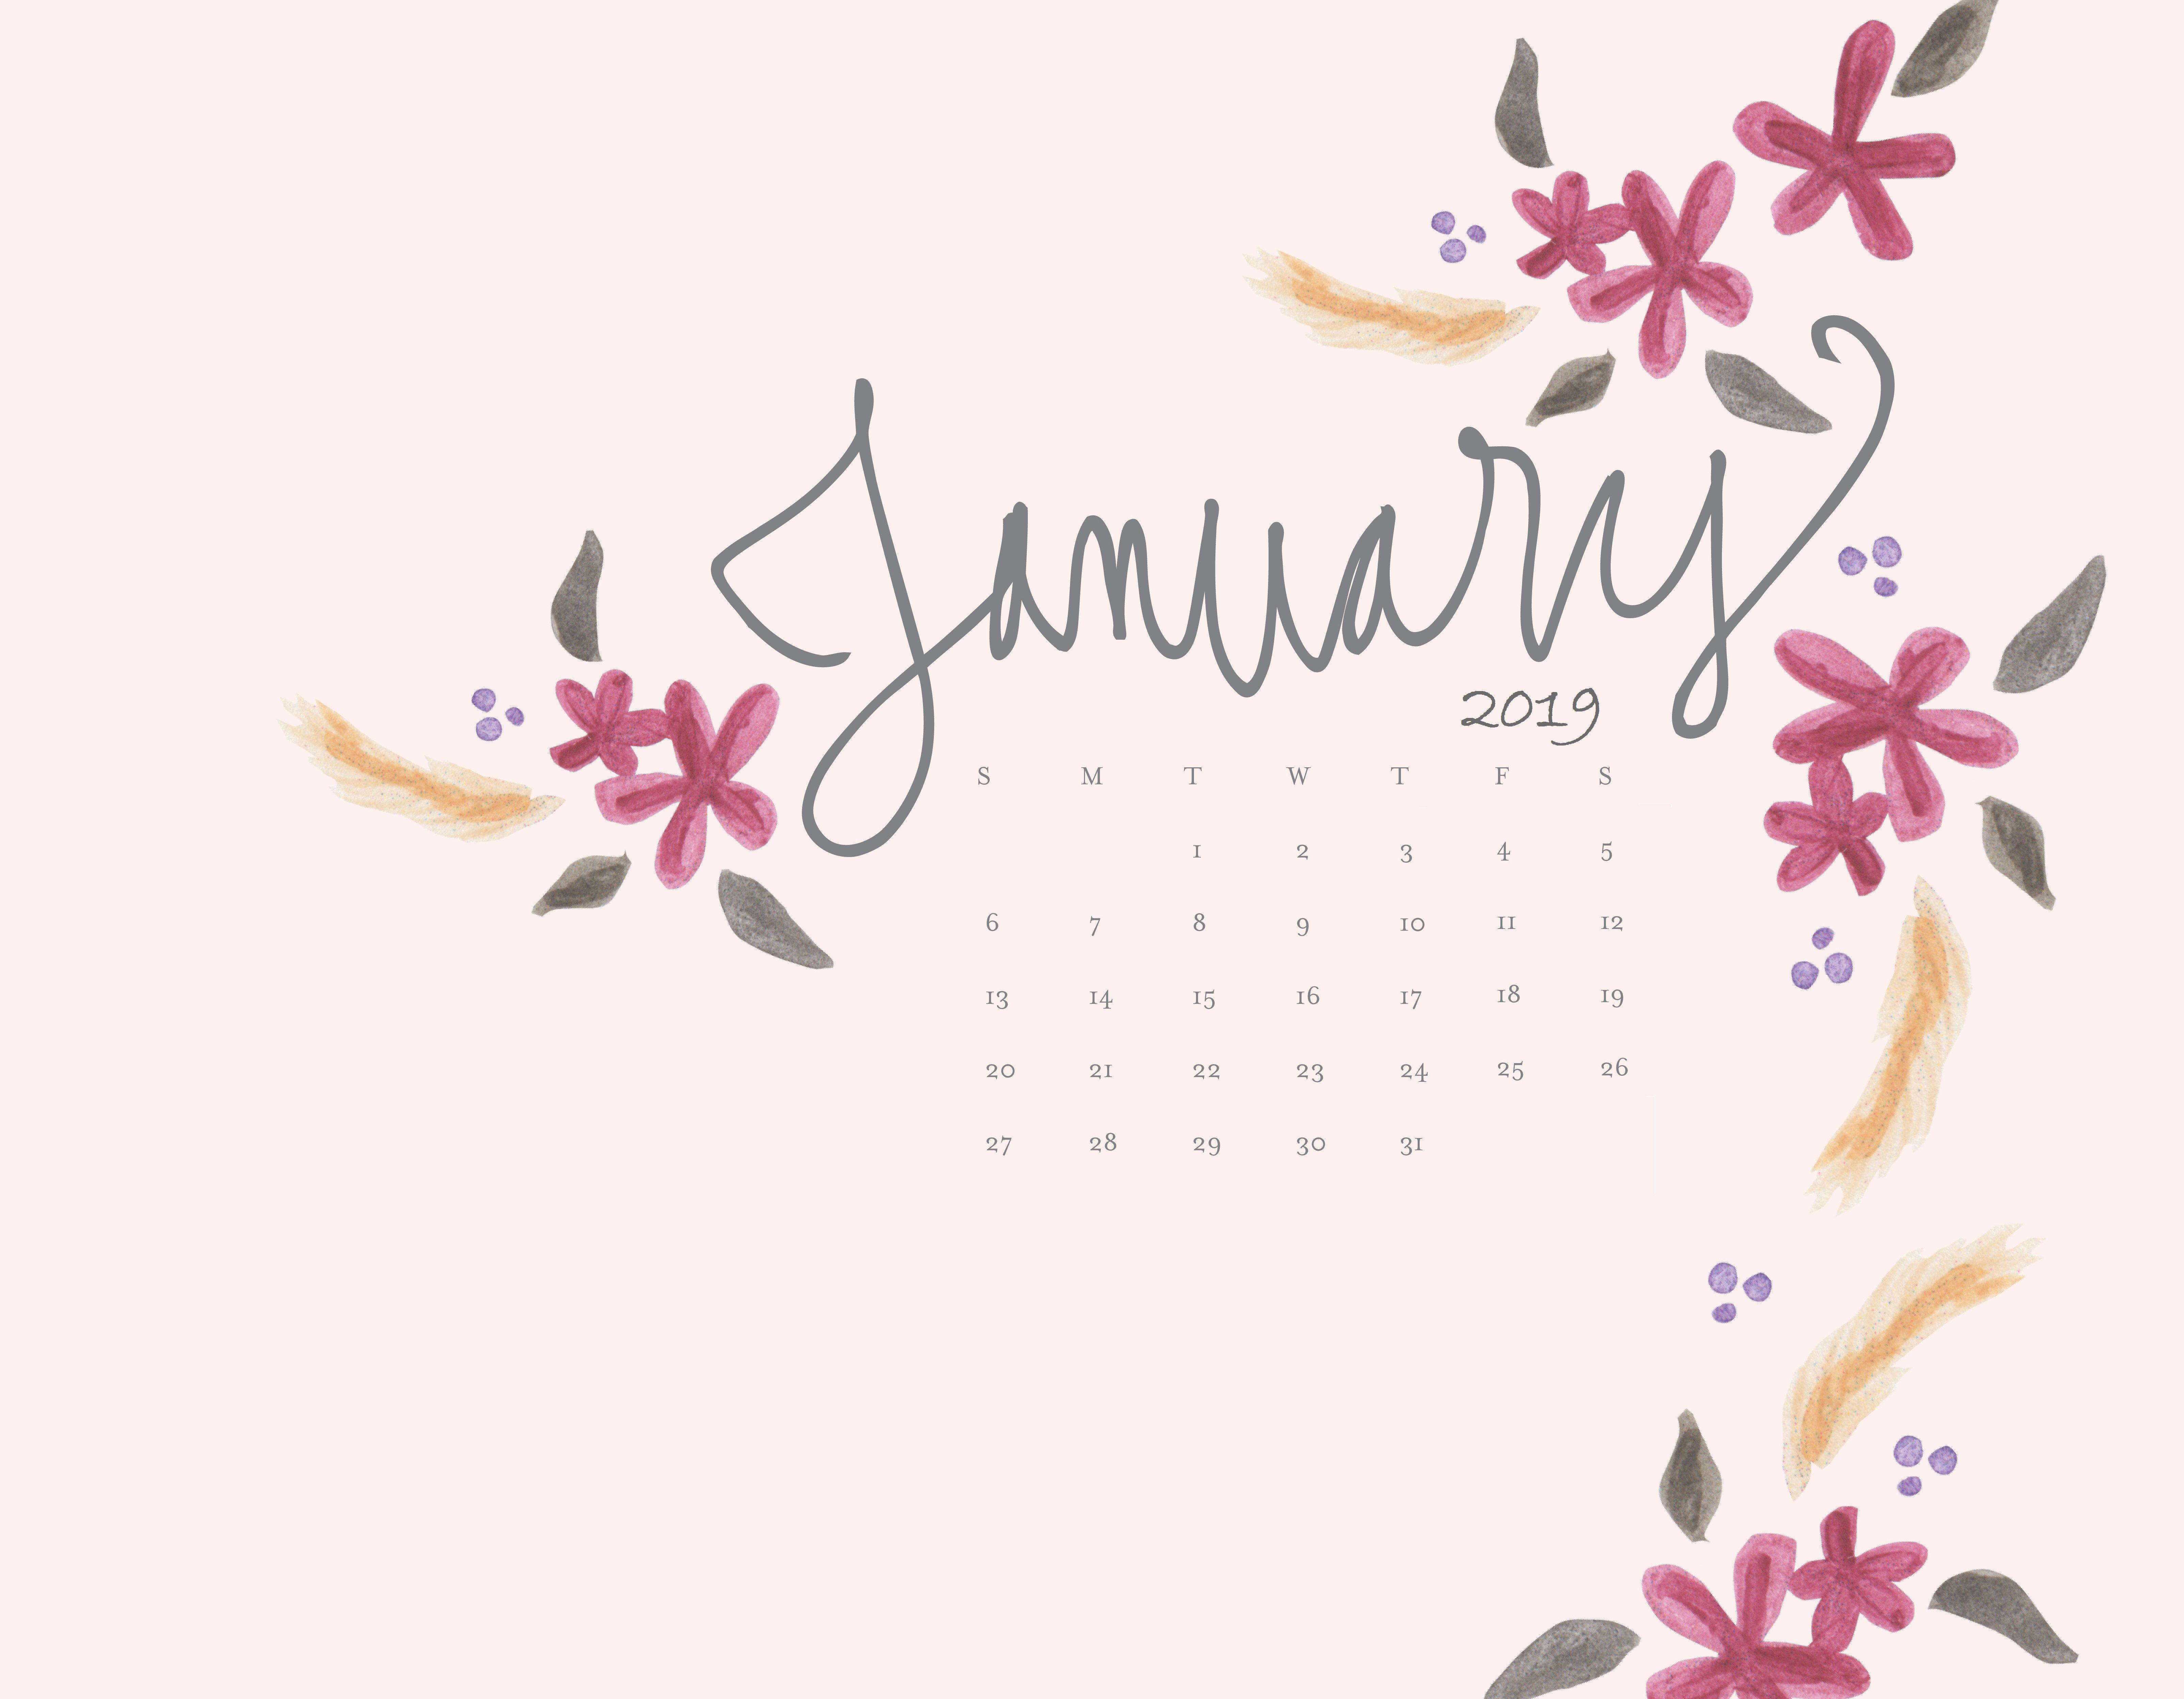 January 2019 Calendar Desktop Background January 2019 Calendar Wallpapers   Wallpaper Cave